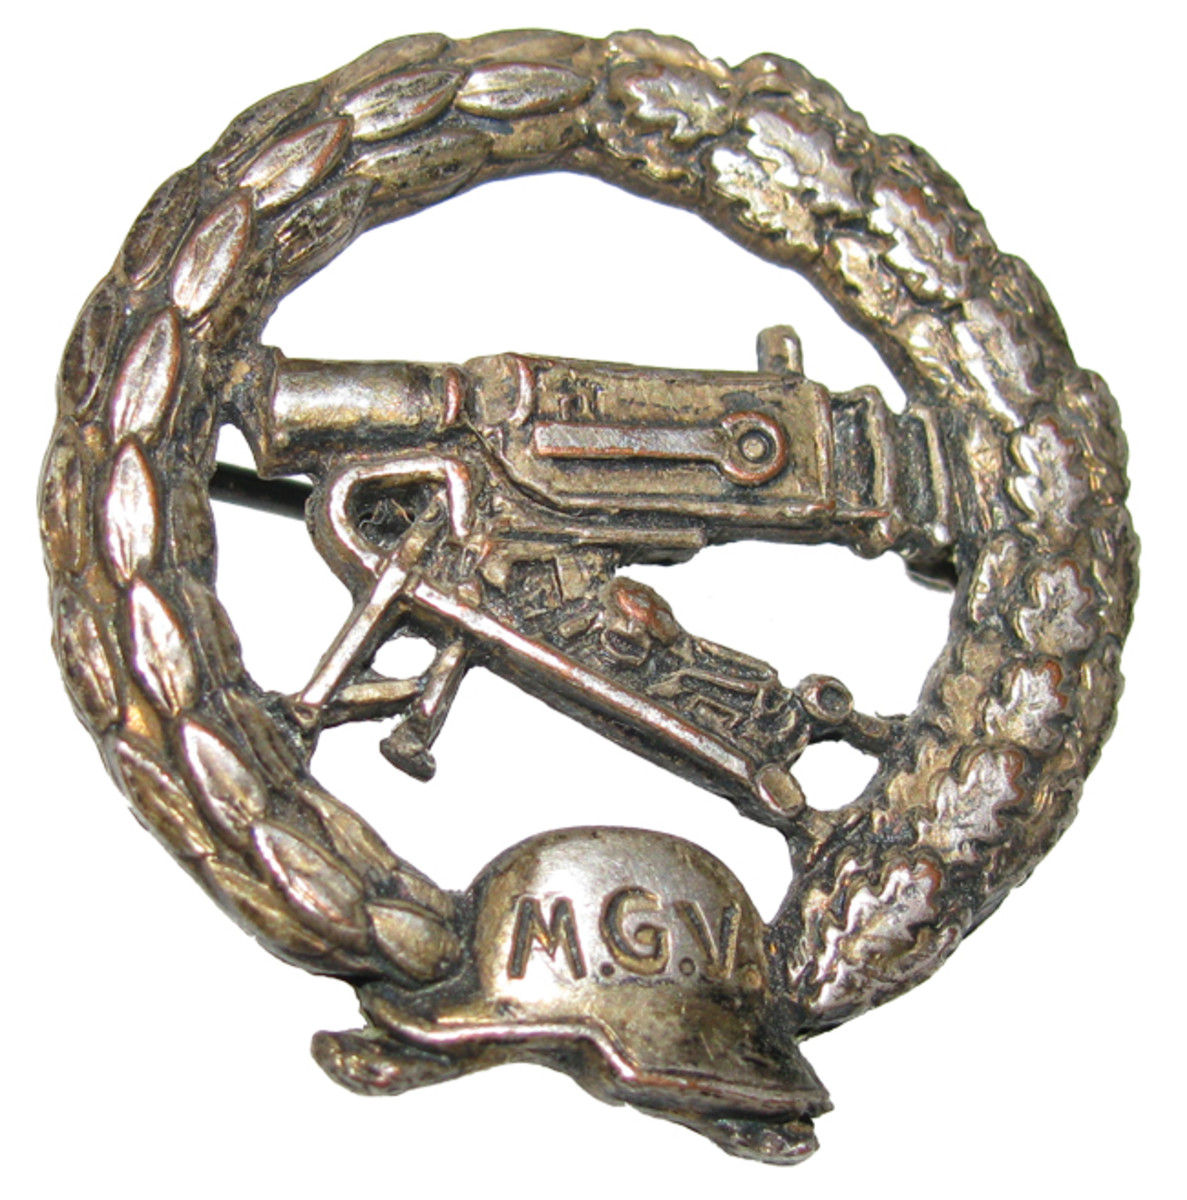 Machine gunners were very proud of their military status. After the war, they formed small veterans' groups, such as the Maschinengewehr Verein (MGV). This is an MGV membership badge.